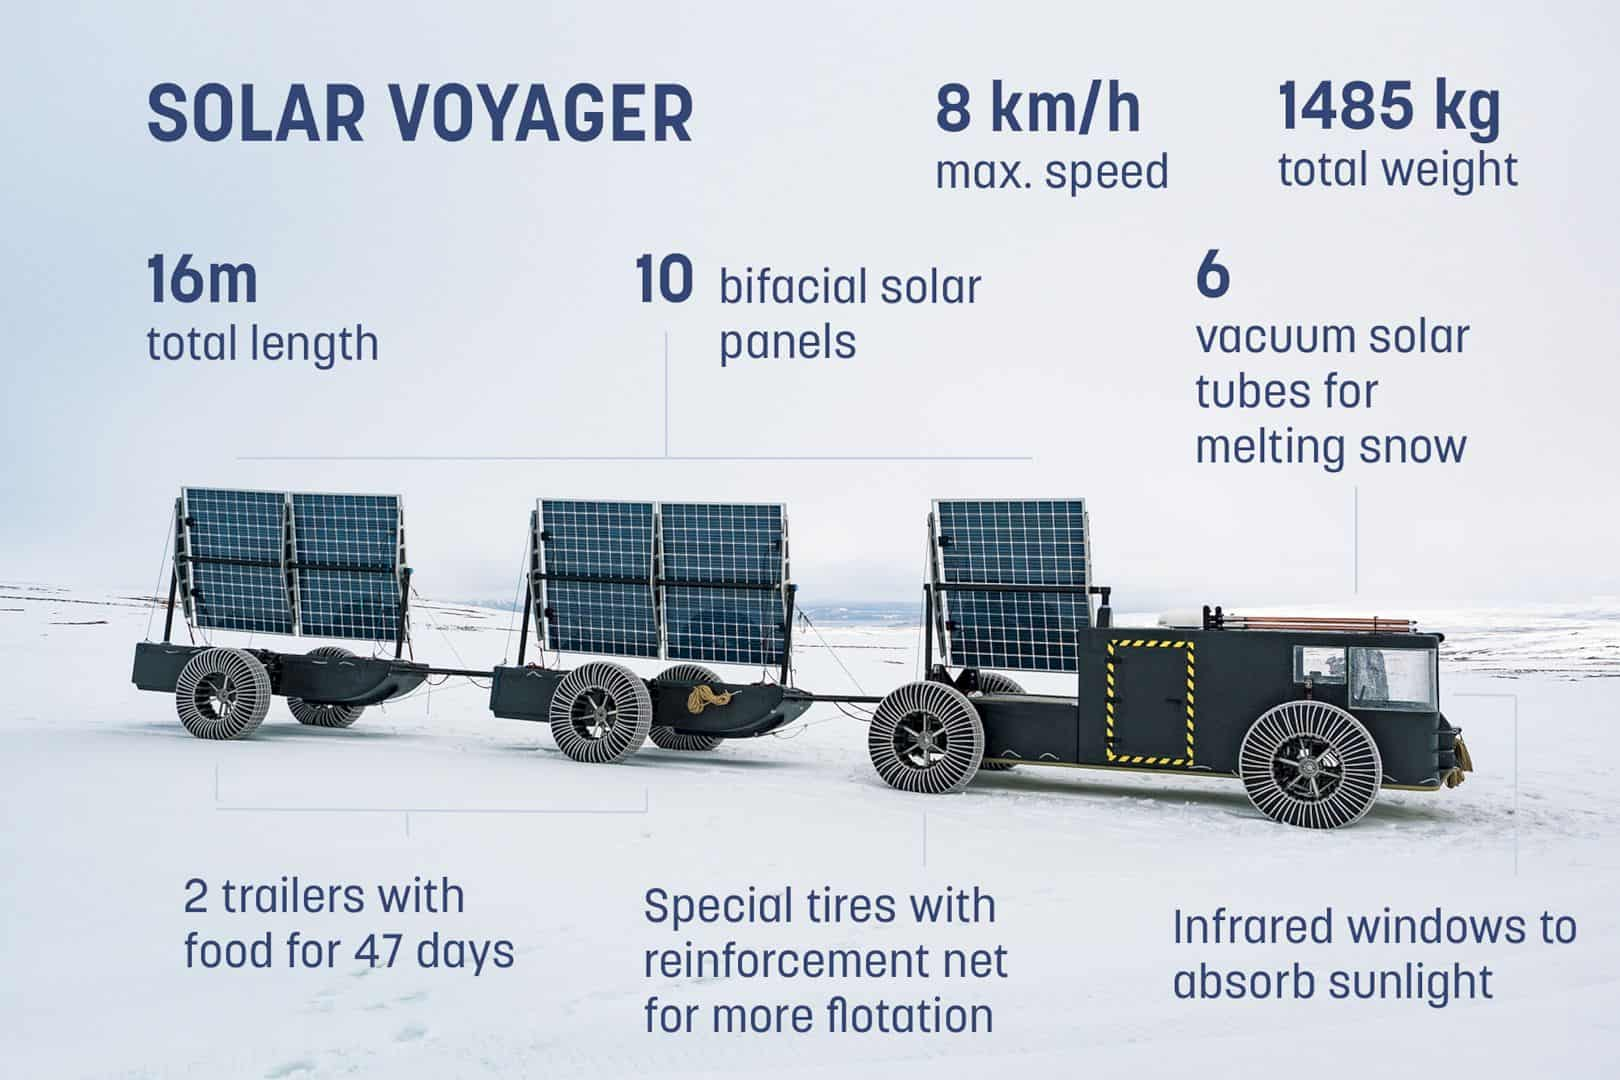 The Solar Voyager 2